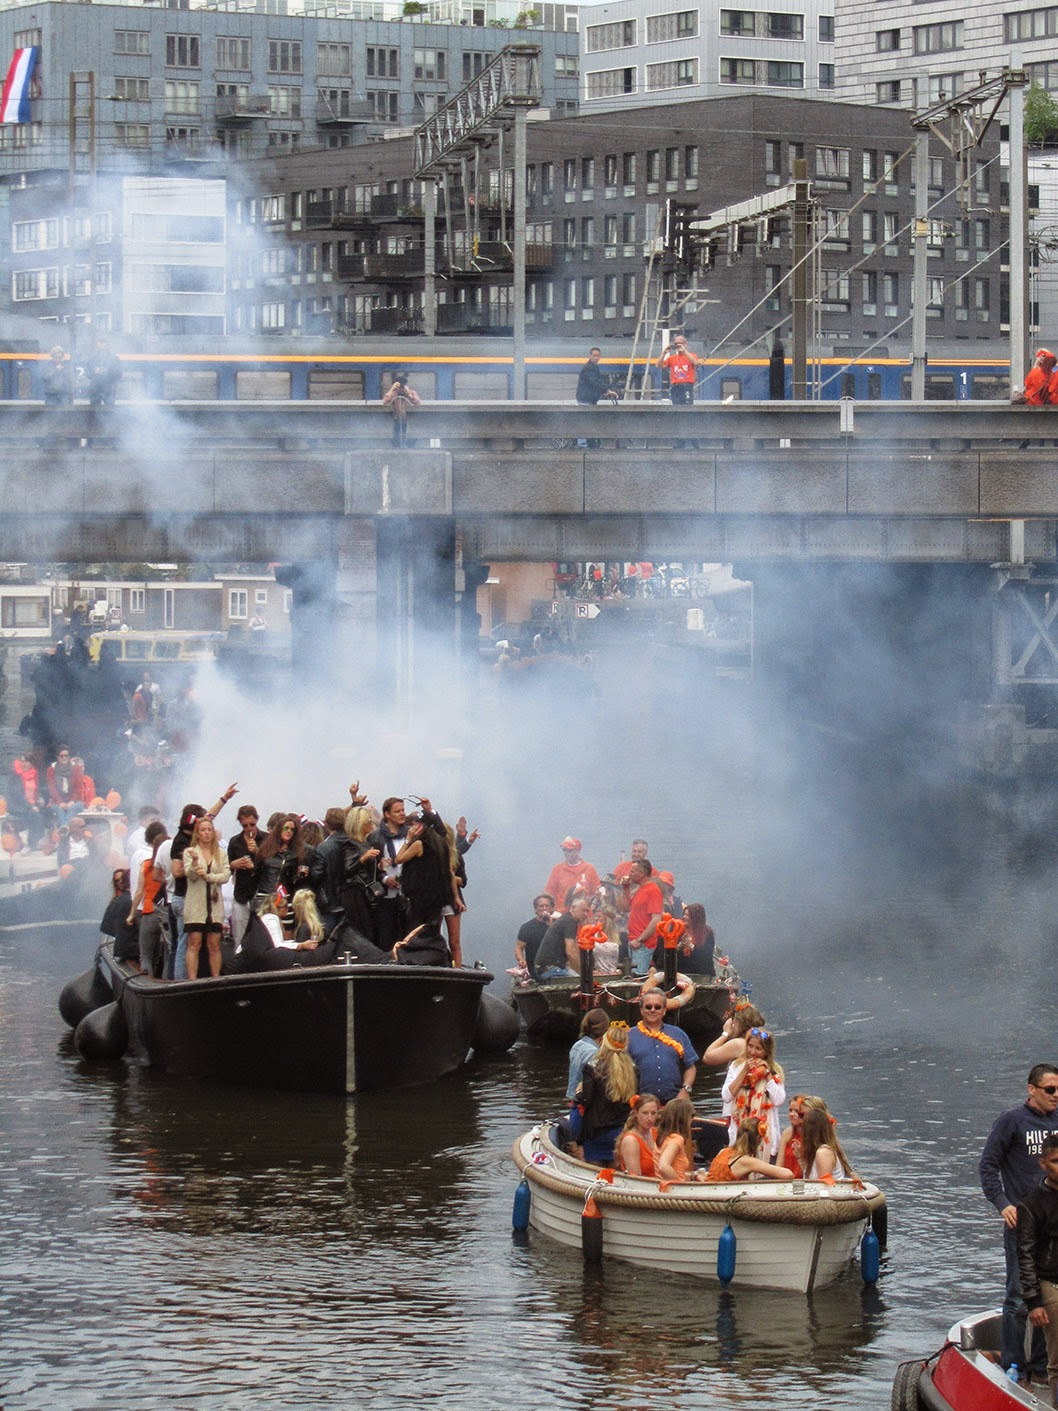 boats on the canal with smoke